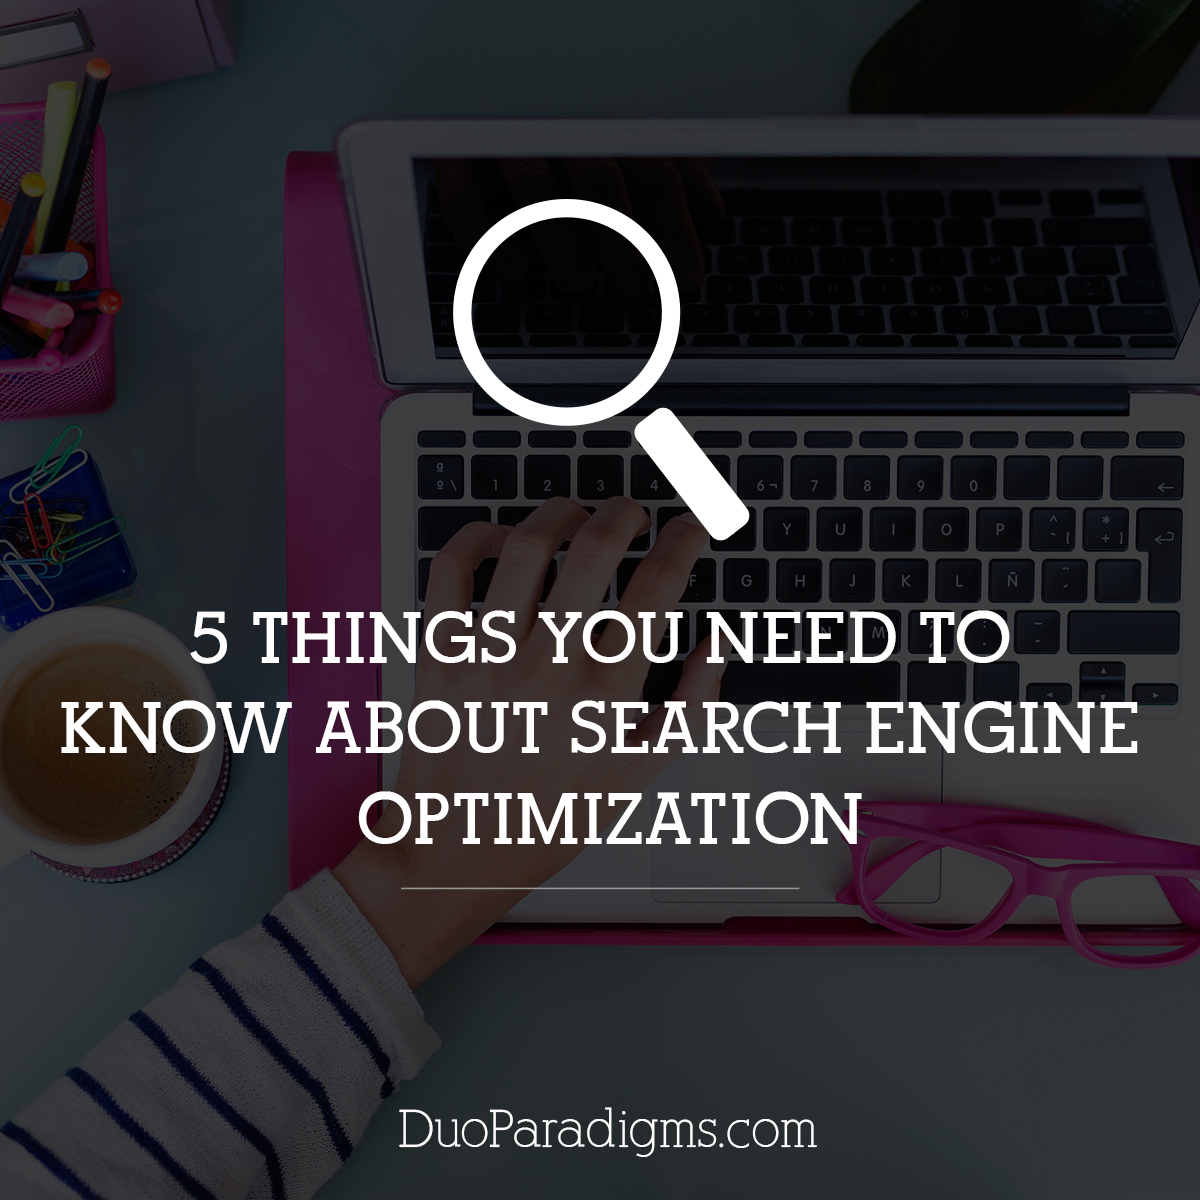 5 Things You Need to Know About Search Engine Optimization